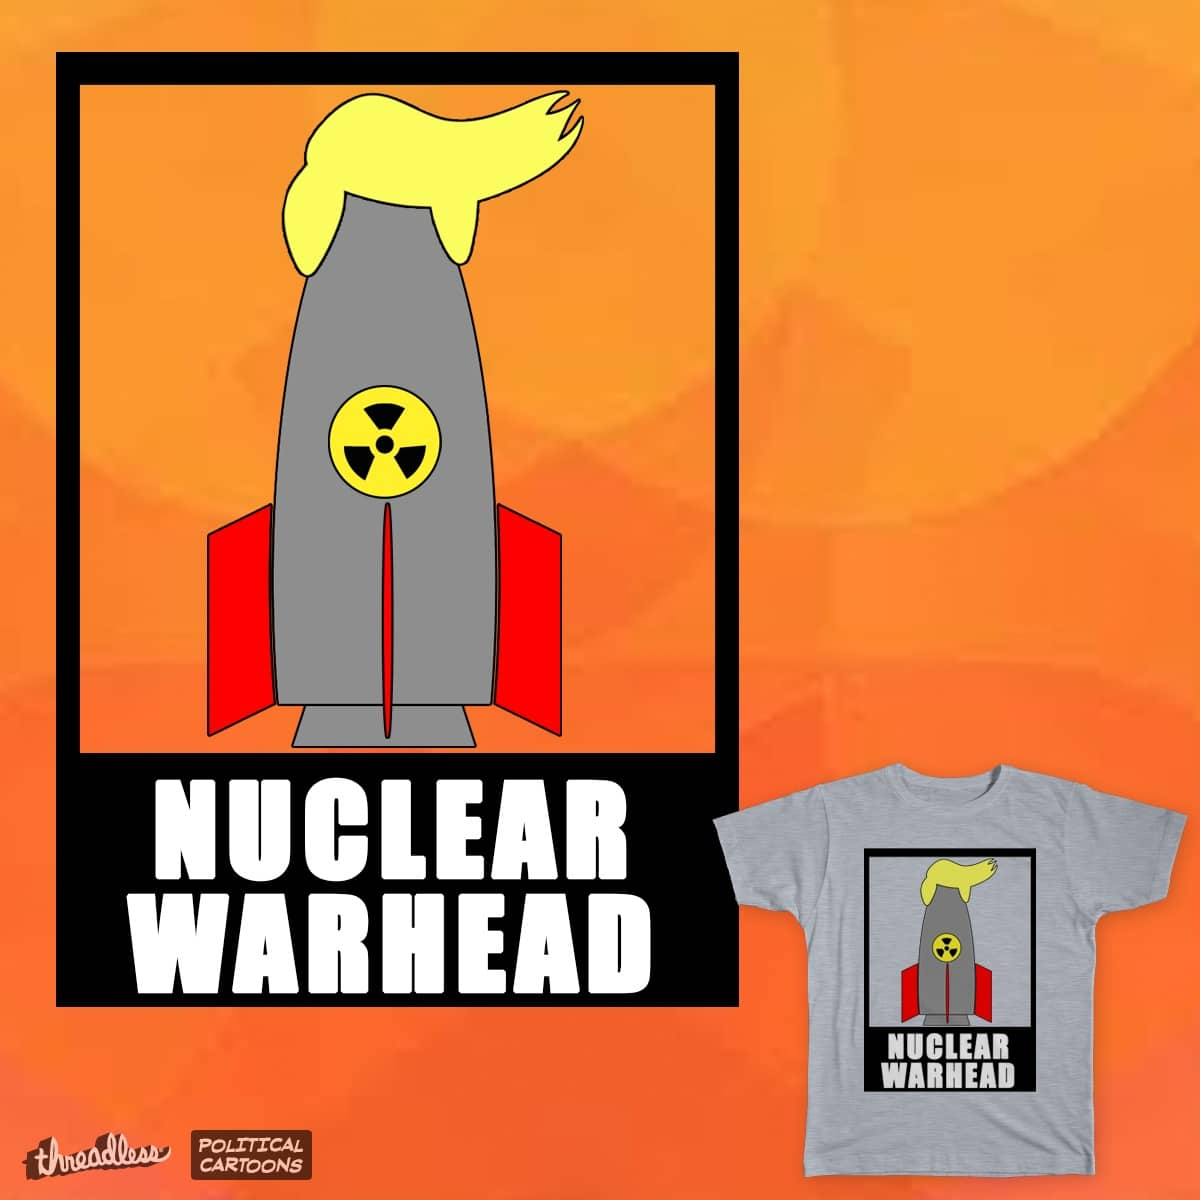 Nuclear WarHead by asor77 on Threadless